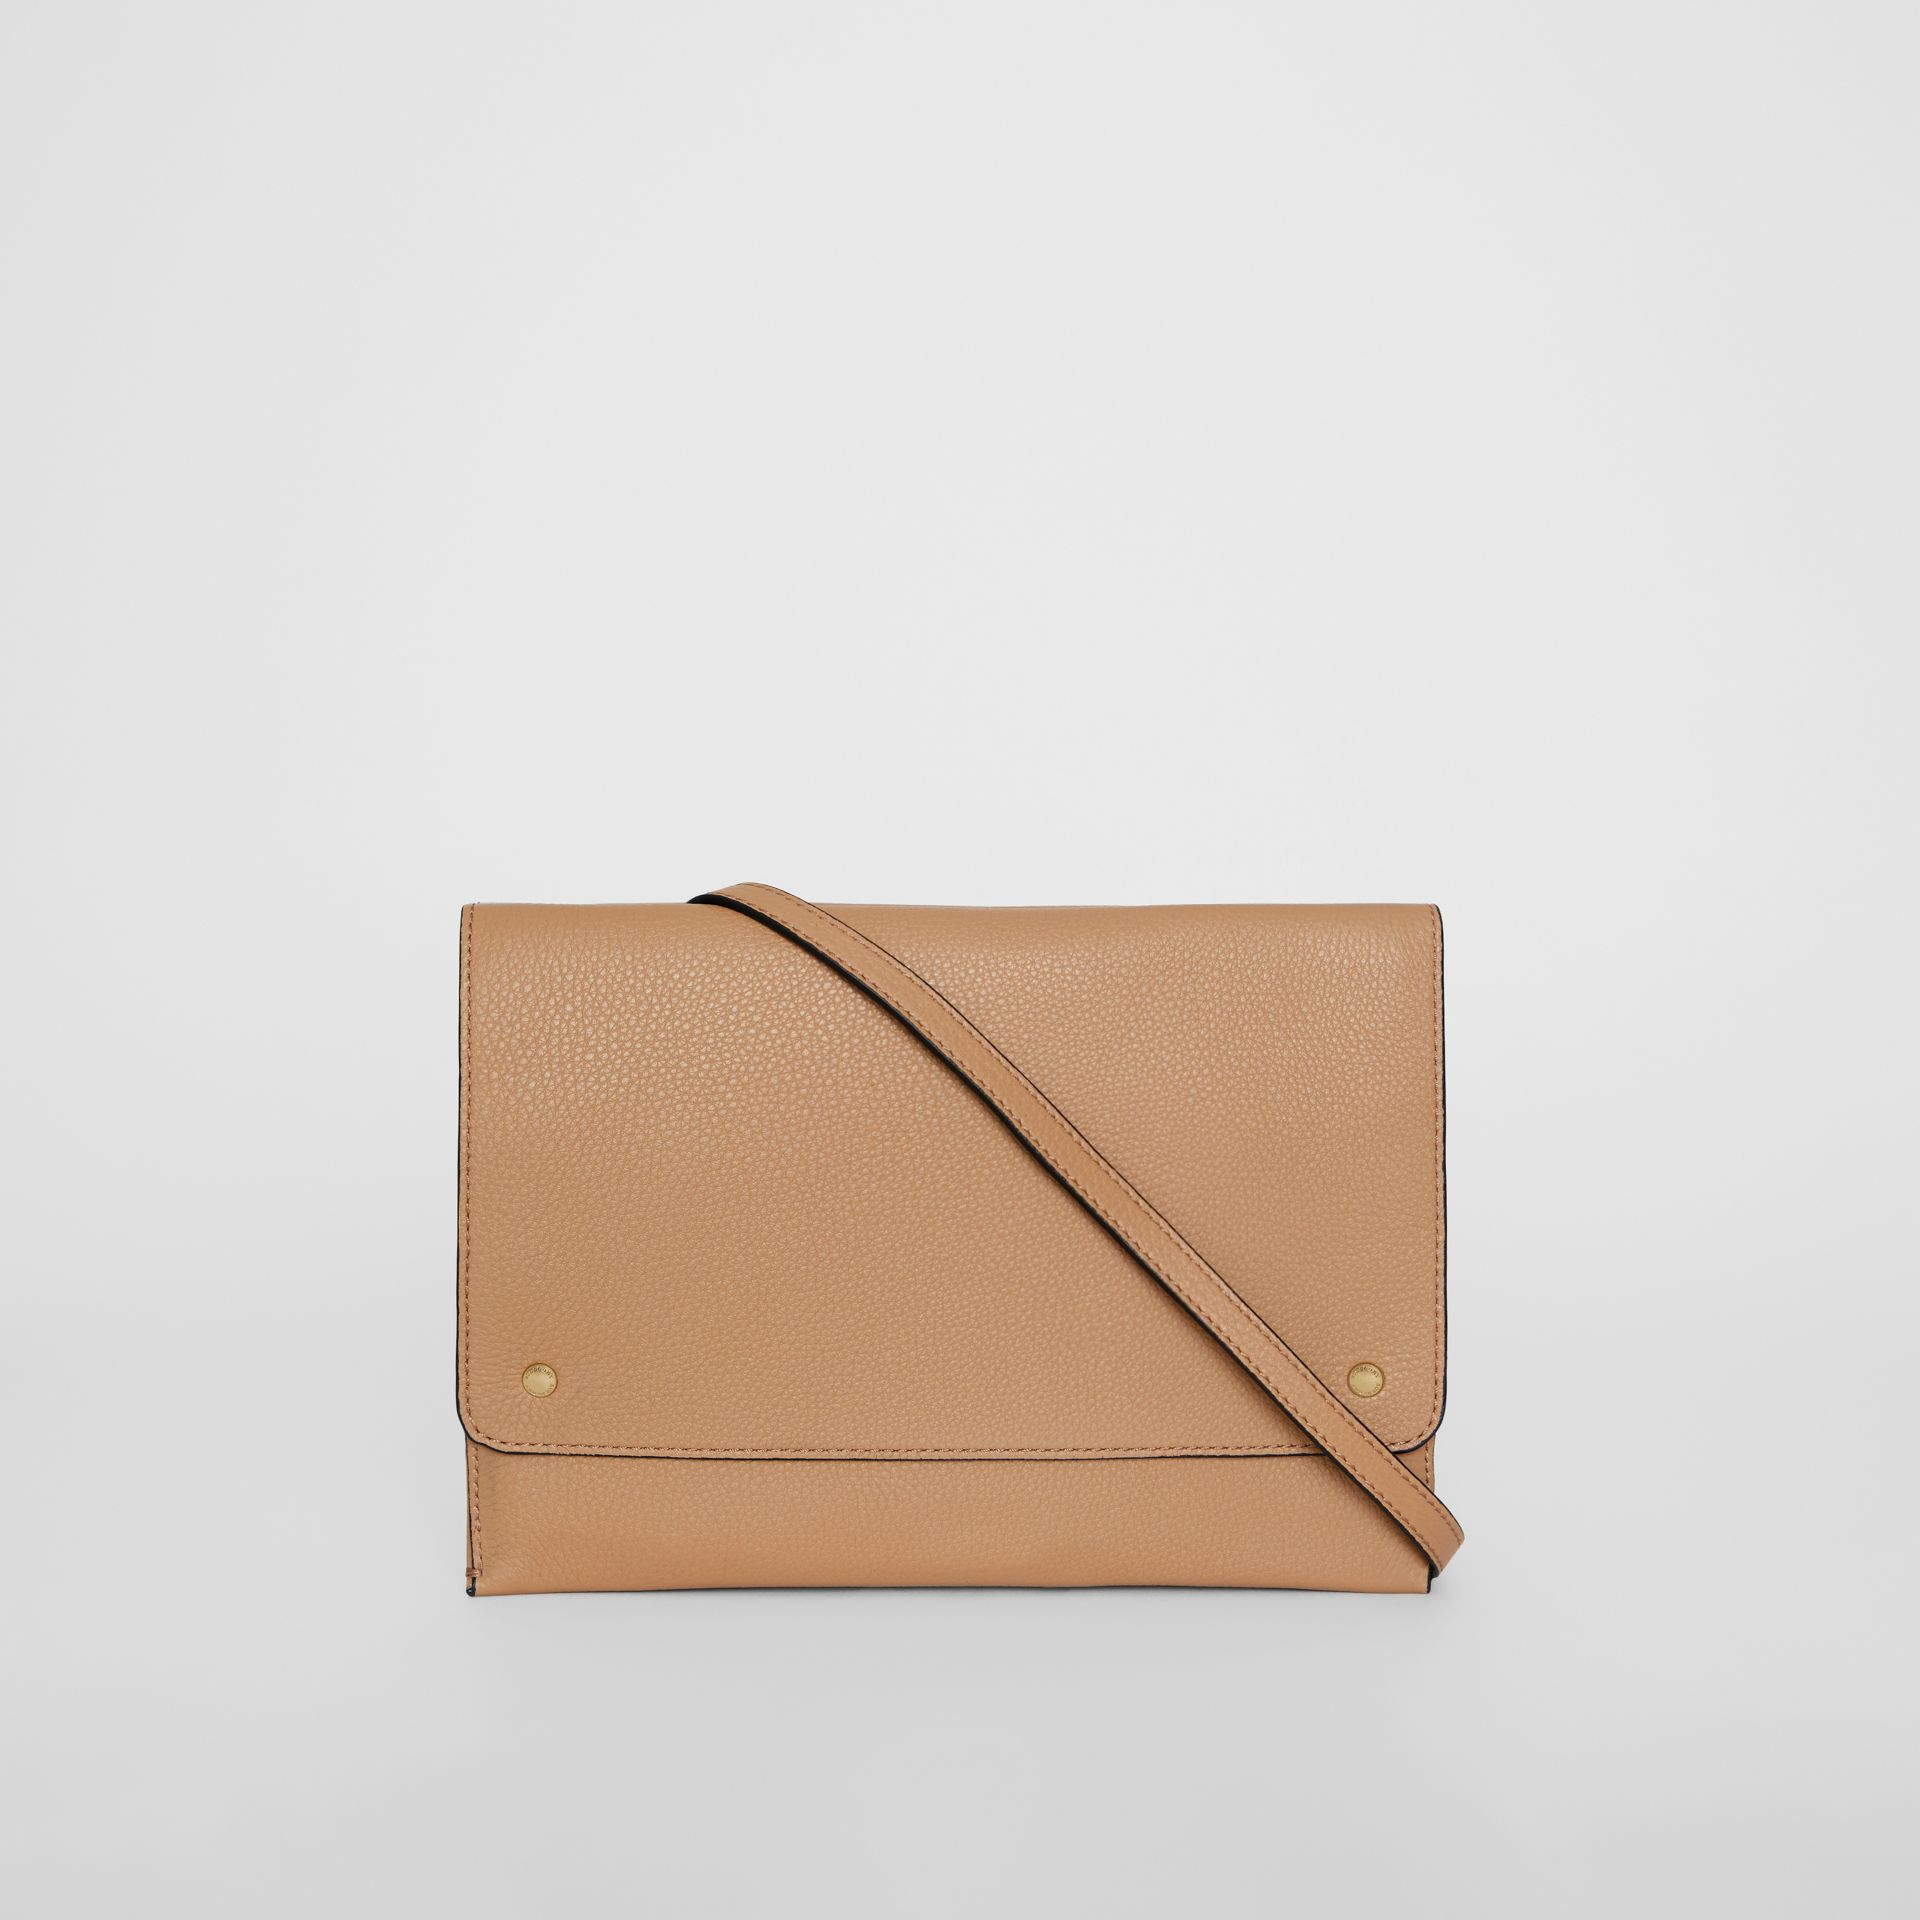 Leather Envelope Crossbody Bag in Light Camel - Women | Burberry United Kingdom - gallery image 7